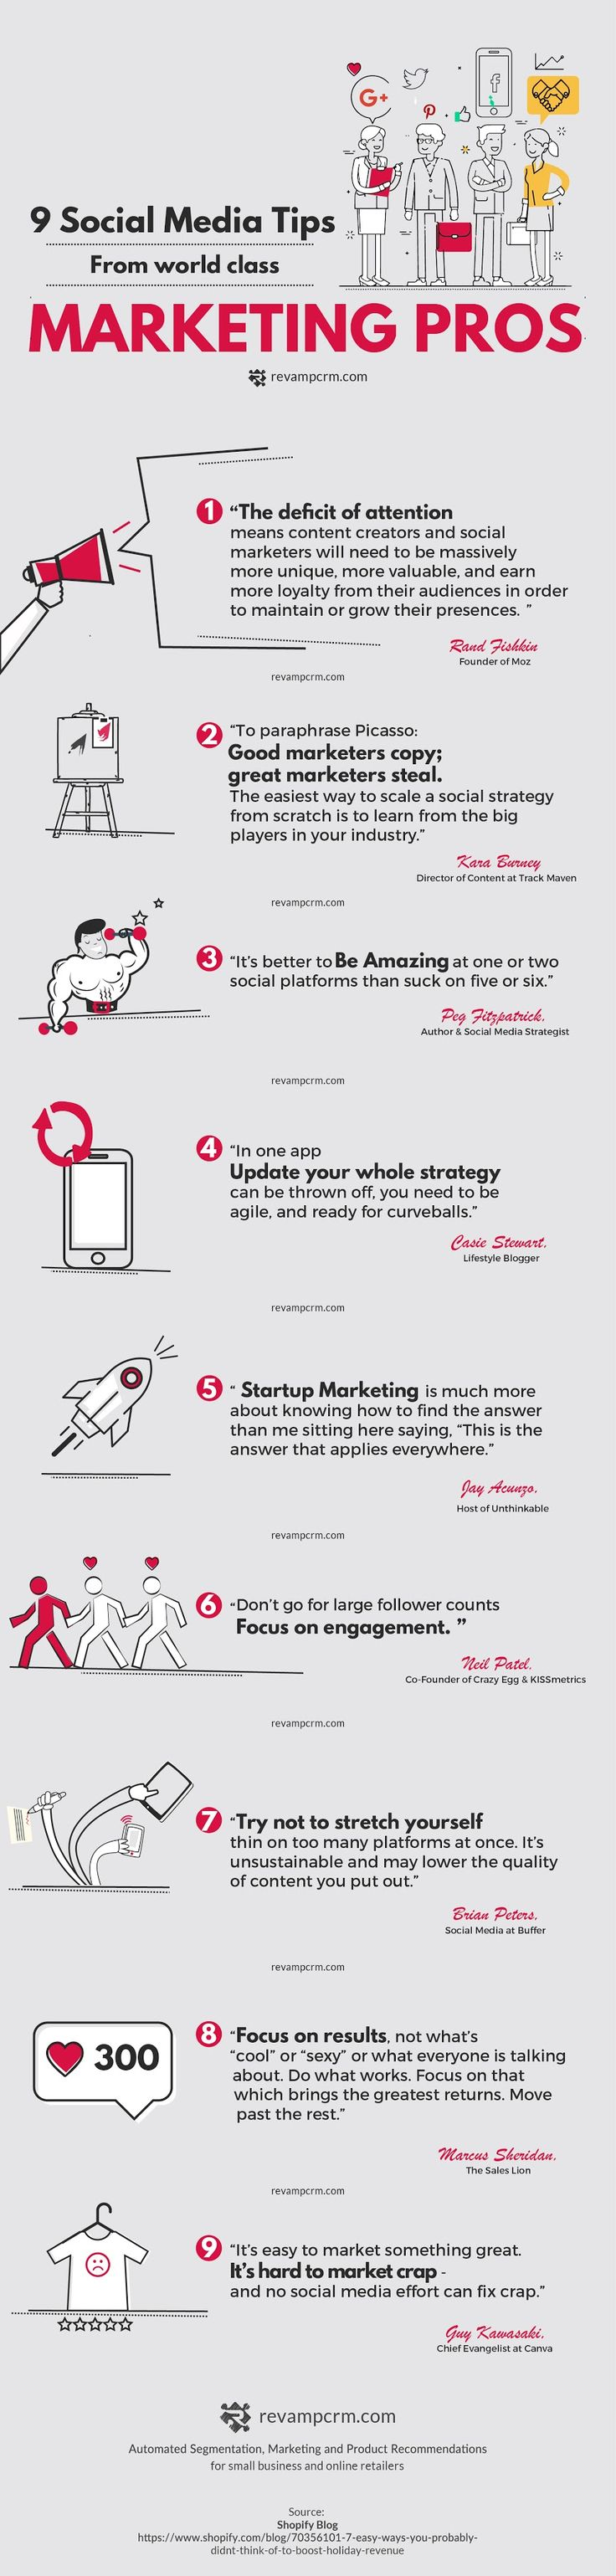 Check out some these social media marketing tips. These are just some clear cut, basic tips when working on marketing your business.